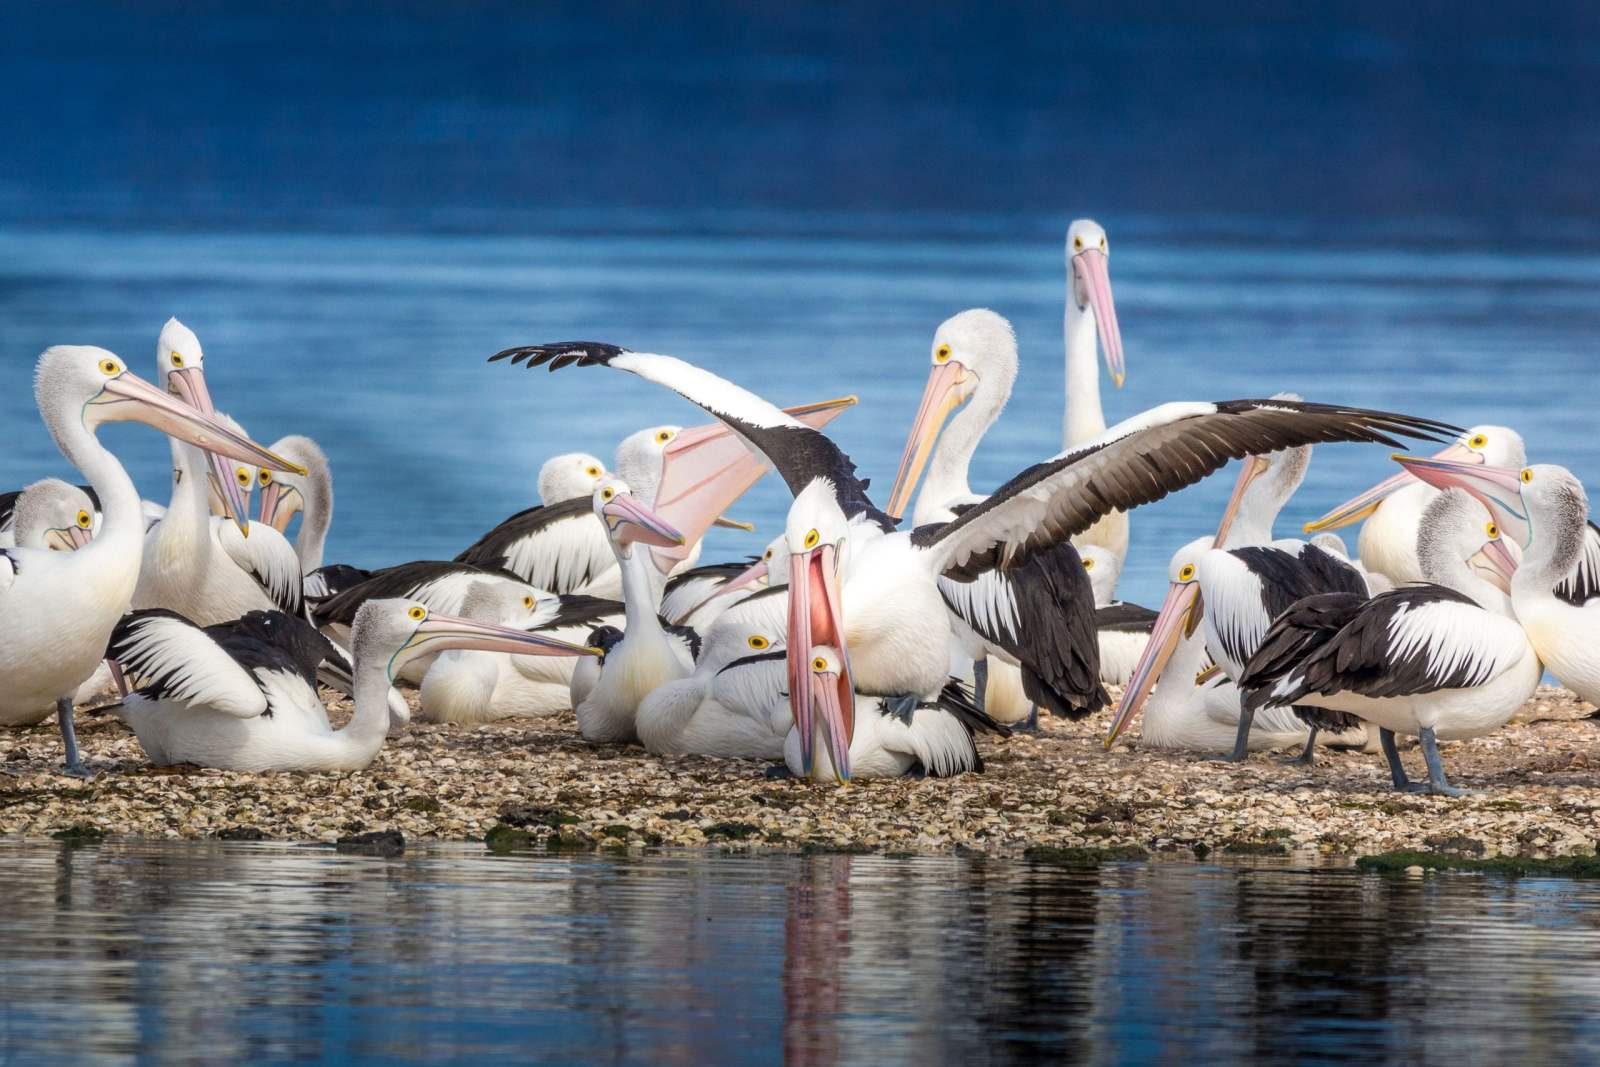 Scholes Phil_Pelicans at play_Cex Nature Photography 2021